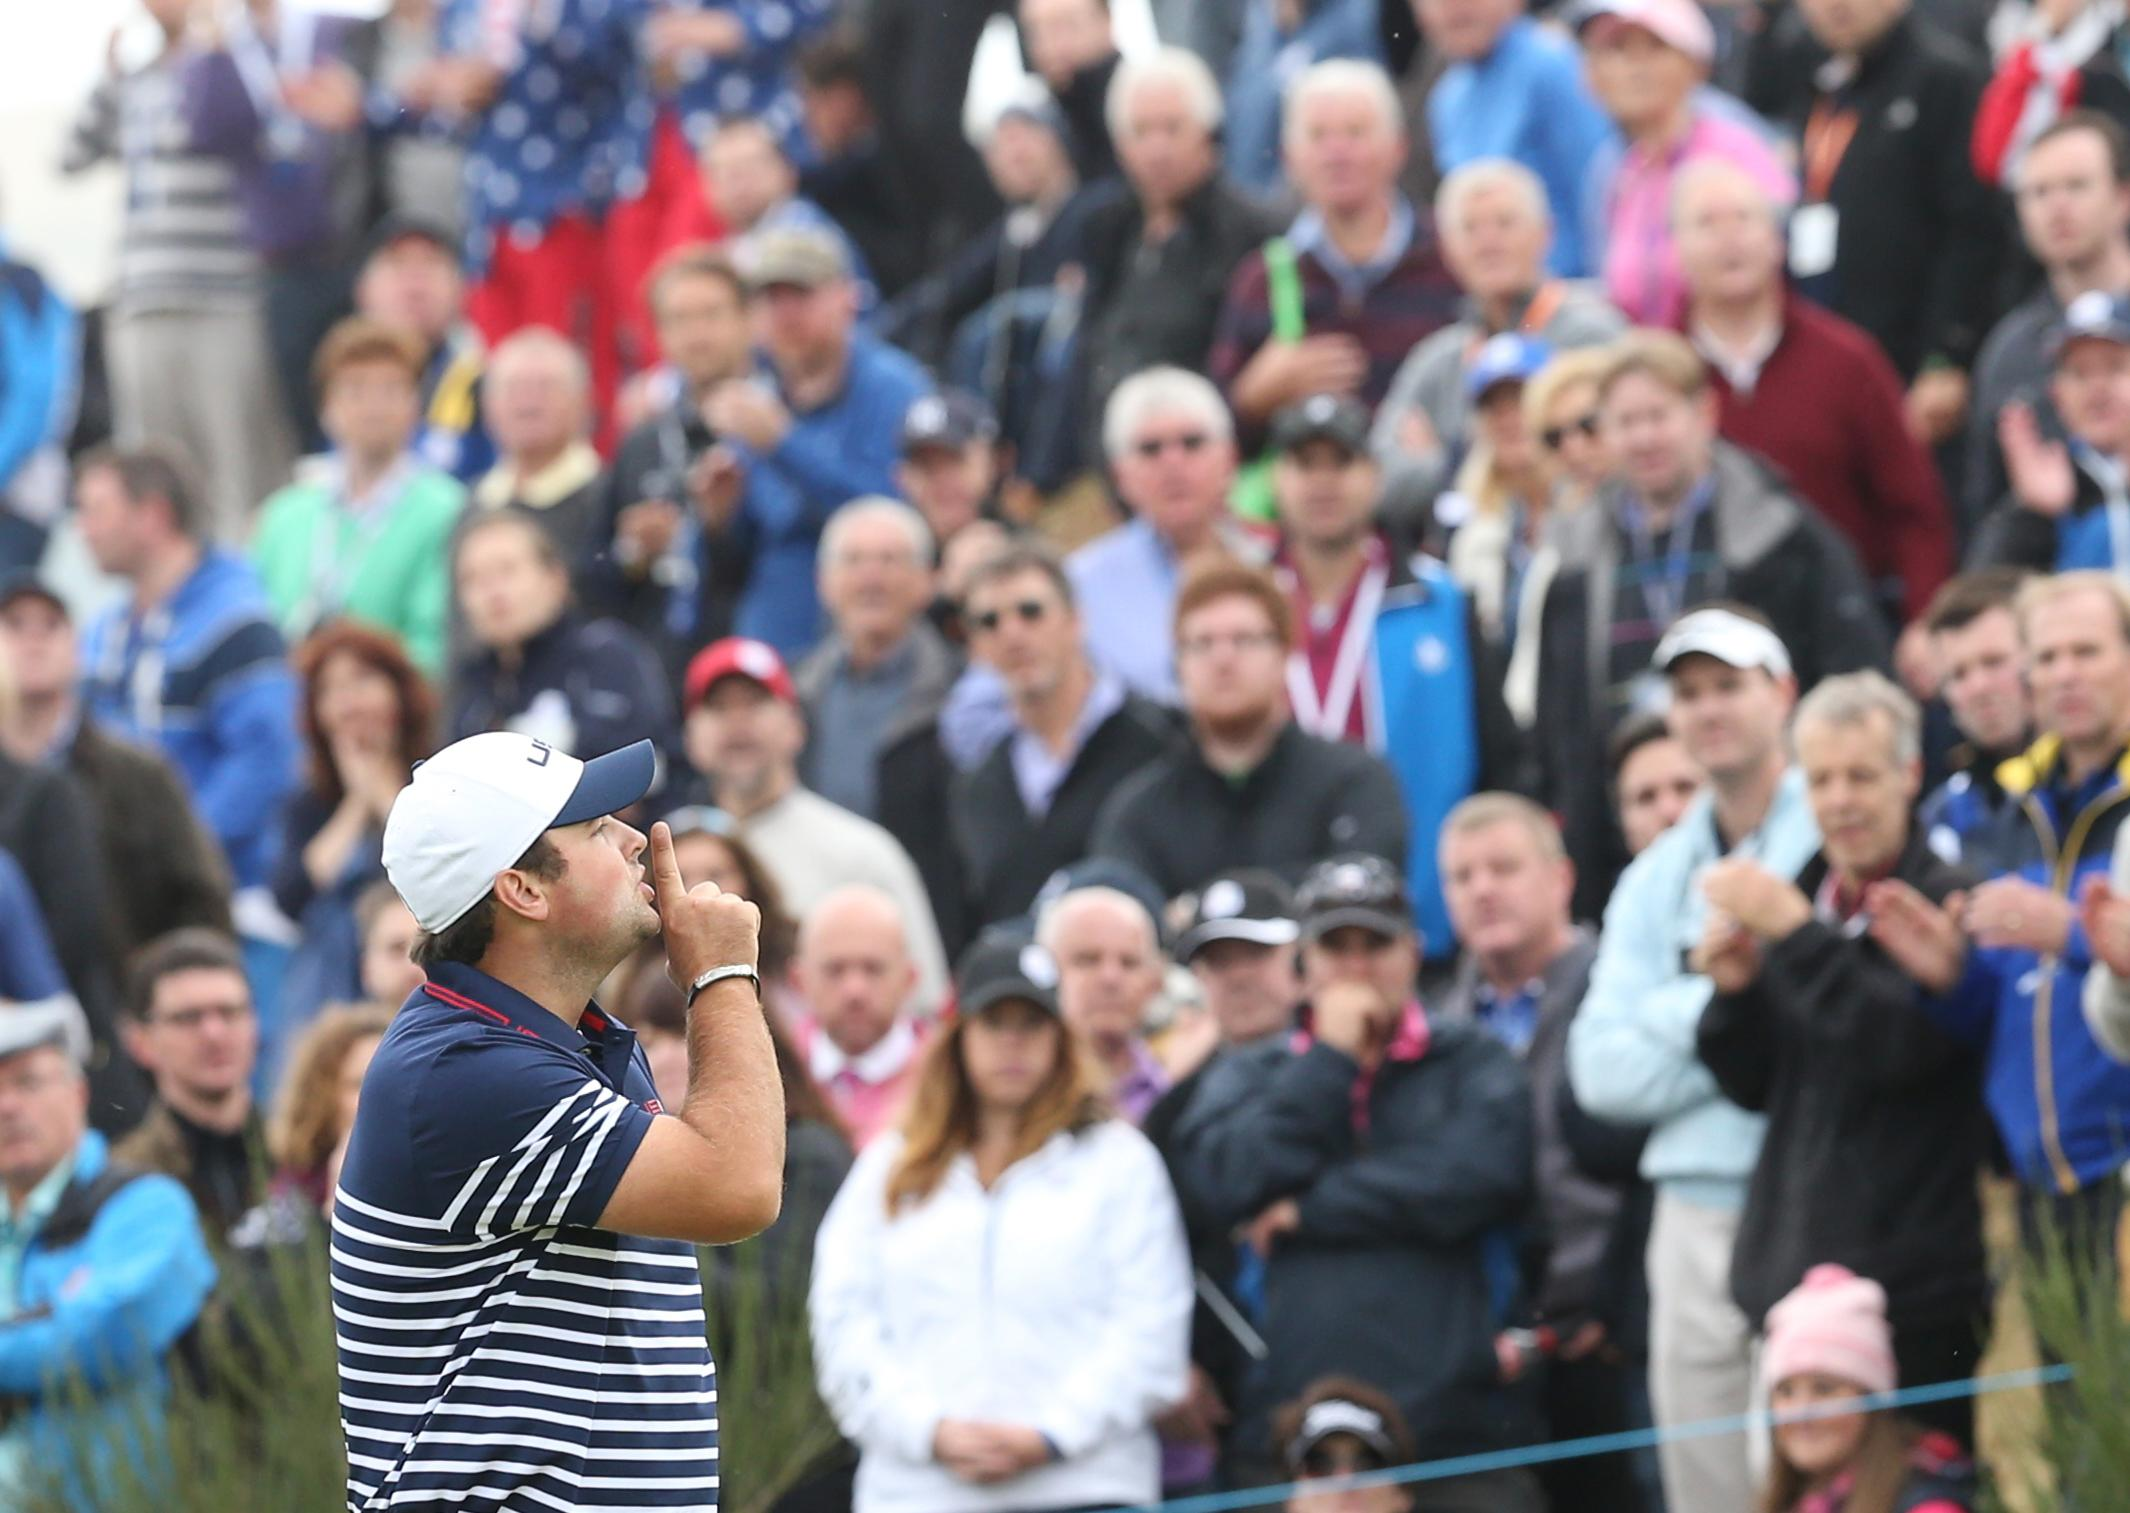 Patrick Reed angered Europeans when he told them to shush at the 2014 Ryder Cup